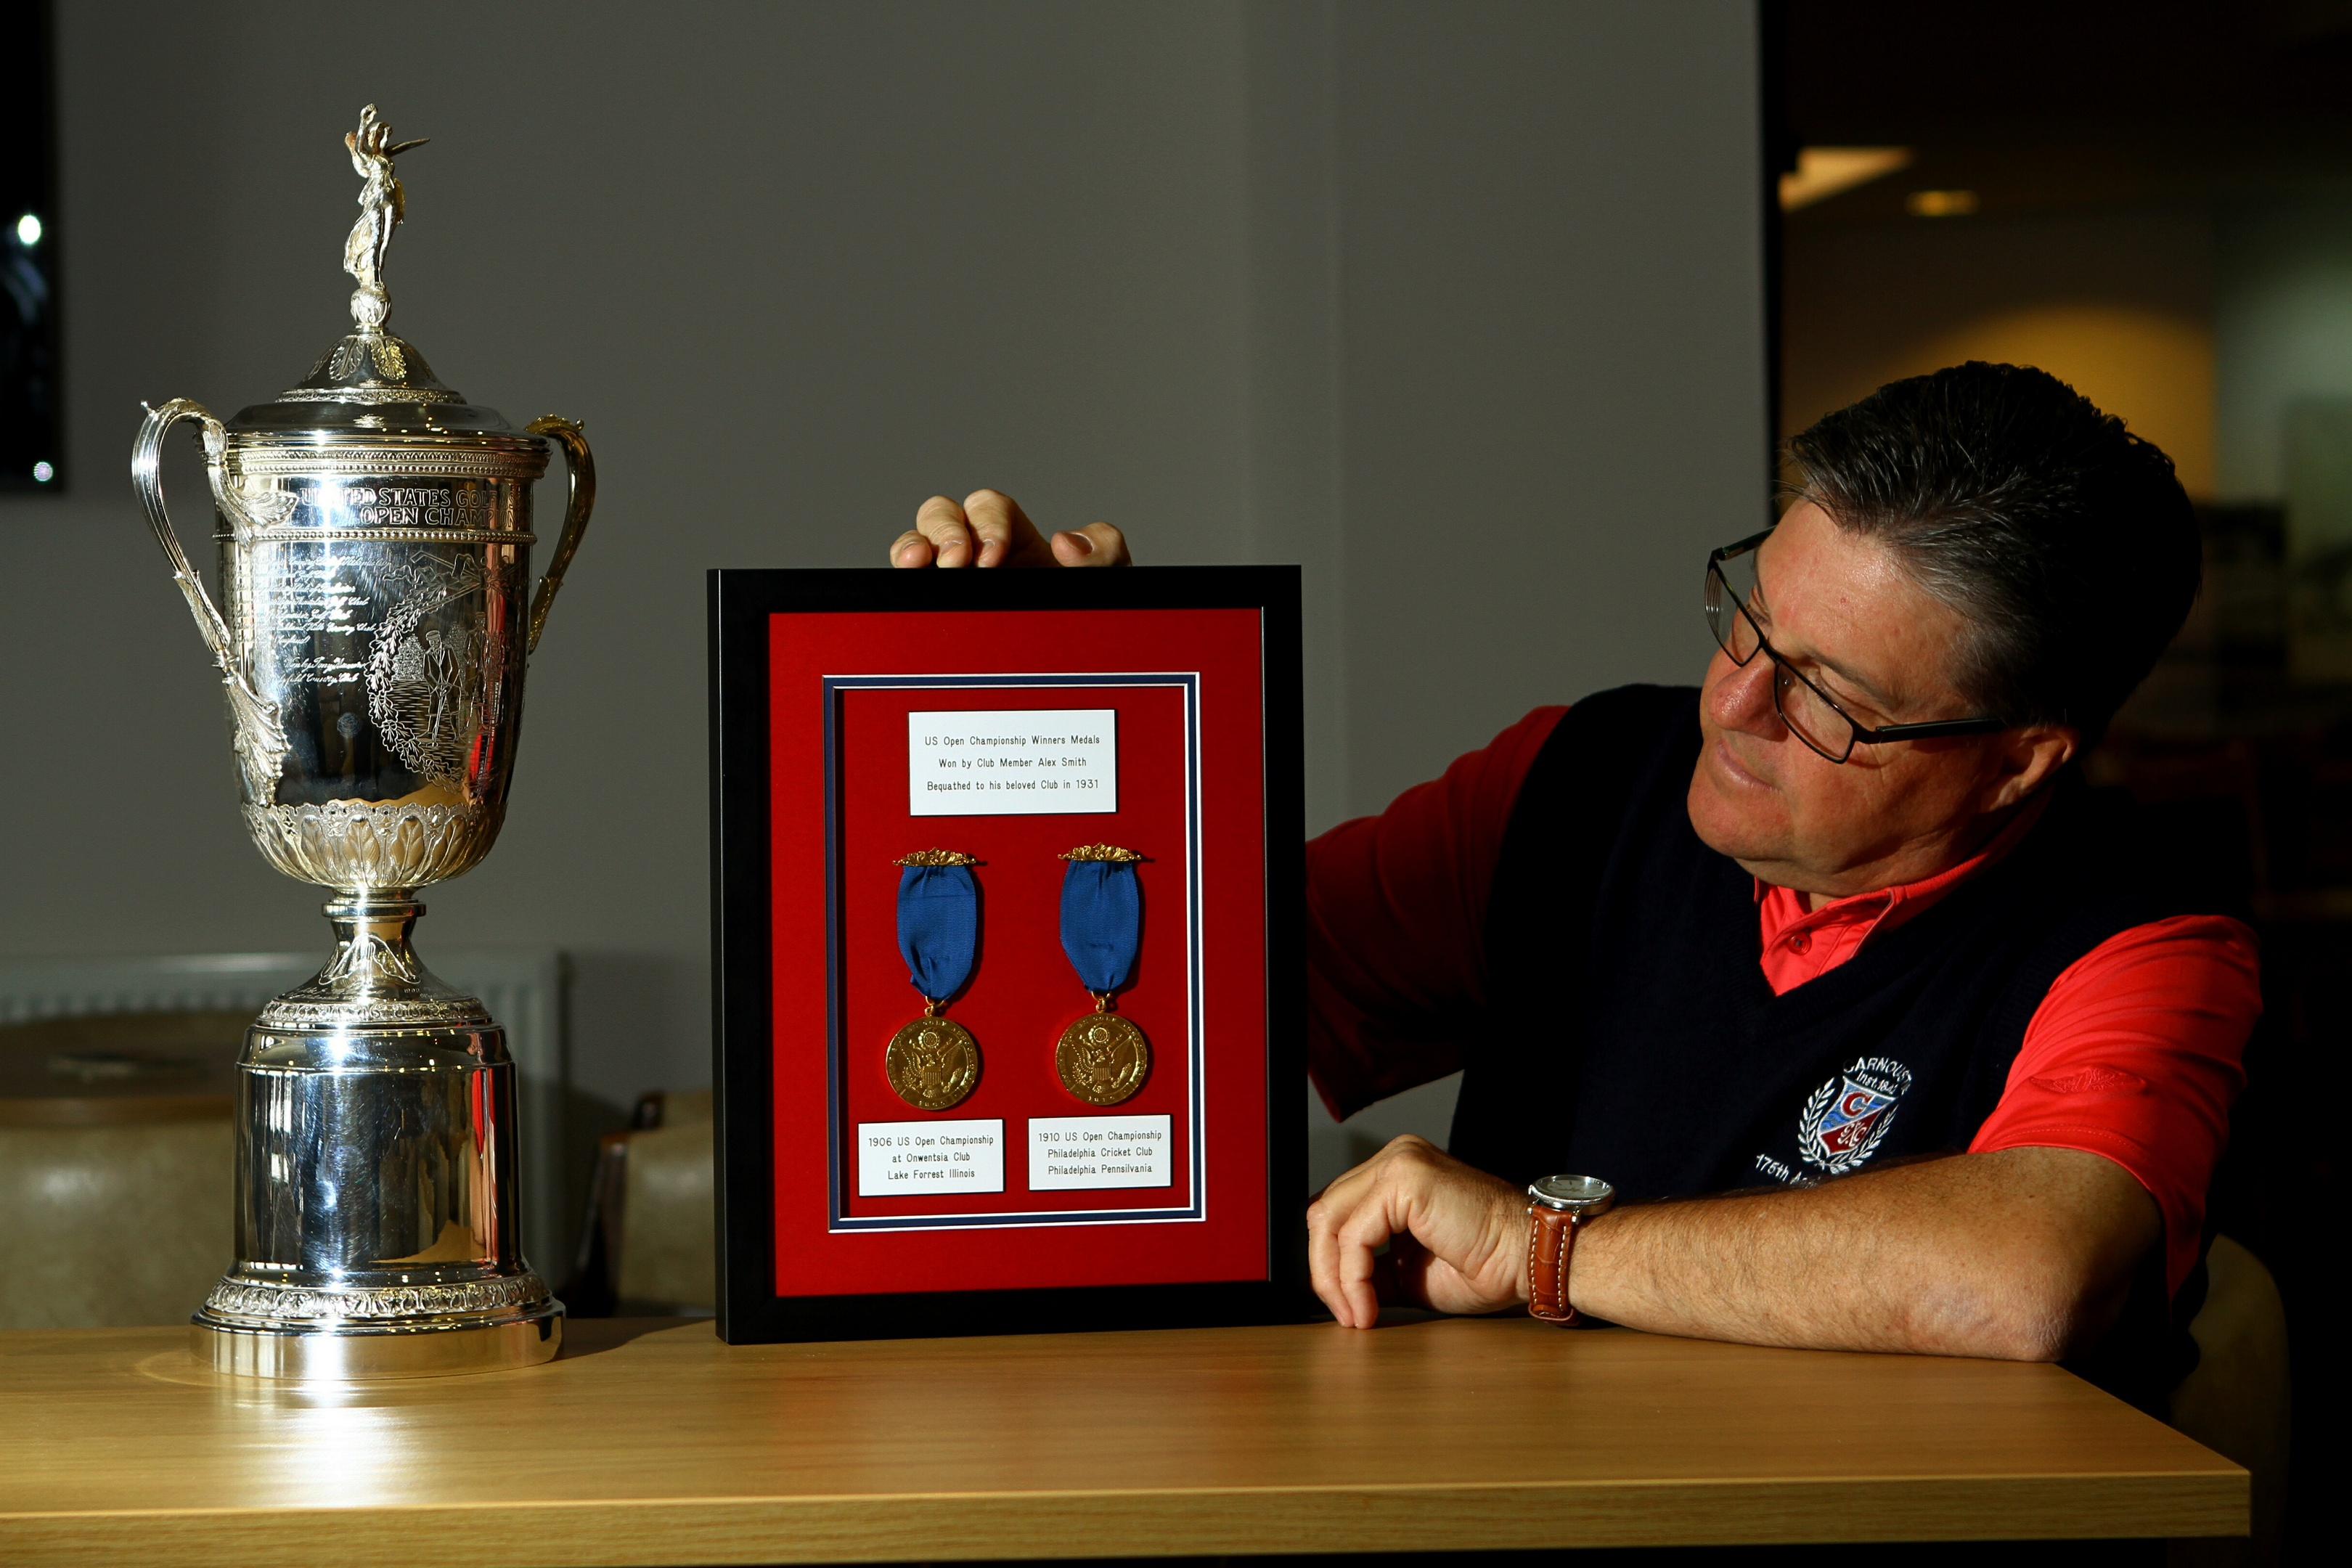 Carnoustie Golf Club Captain Bill Thompson, with the US Open Championship trophy and US Open Championship winning medals from 1906 and 1910